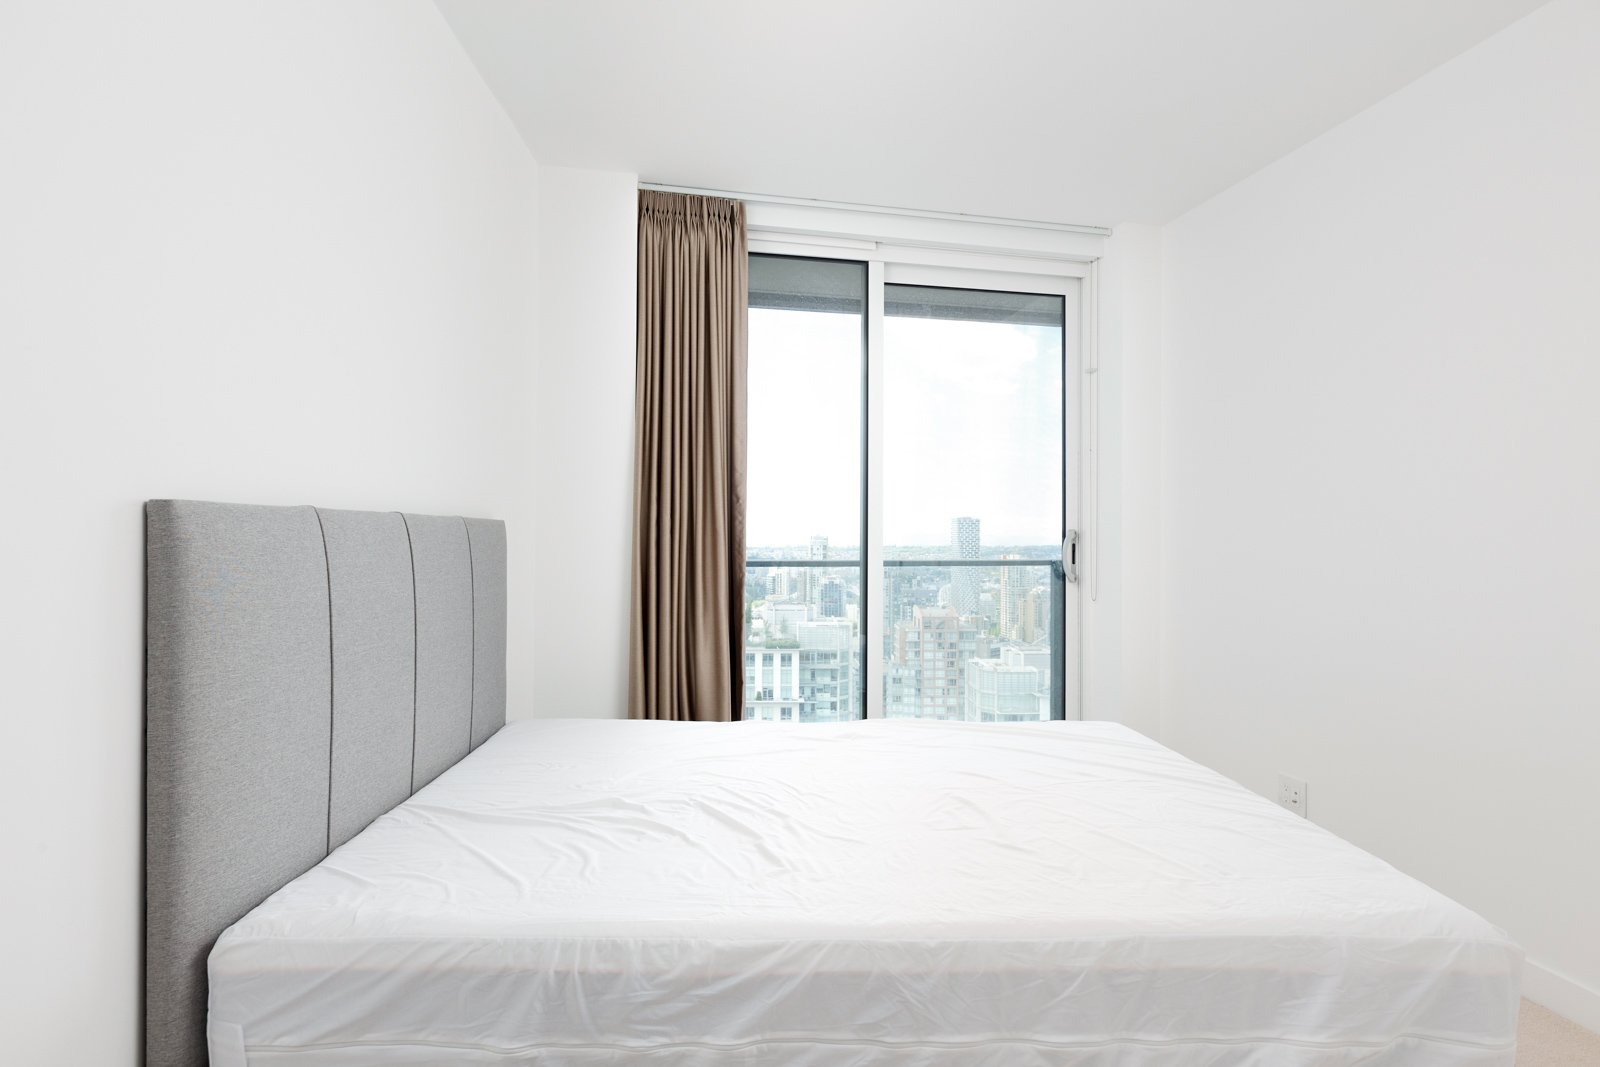 Bedroom in Downtown Vancouver condo with view.